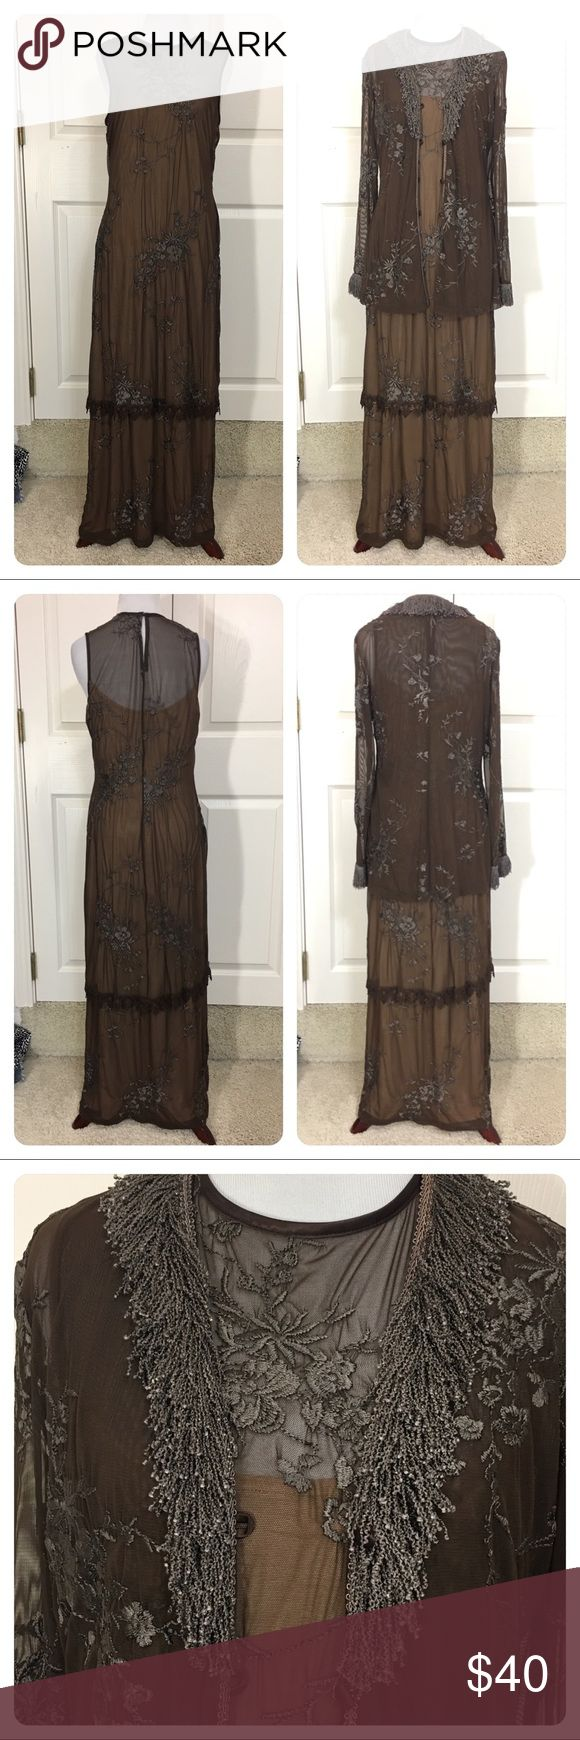 Sue Wong dress and jacket - boho chic This is so cool. Elegant yet boho chic!  Brown maxi dress with sheer embroidered overly. Matching jacket with unbelievable fun fringe. Jacket has pretty front loop buttons. Unique set!  Great as separates or together. No flaws noted. Sue Wong Dresses